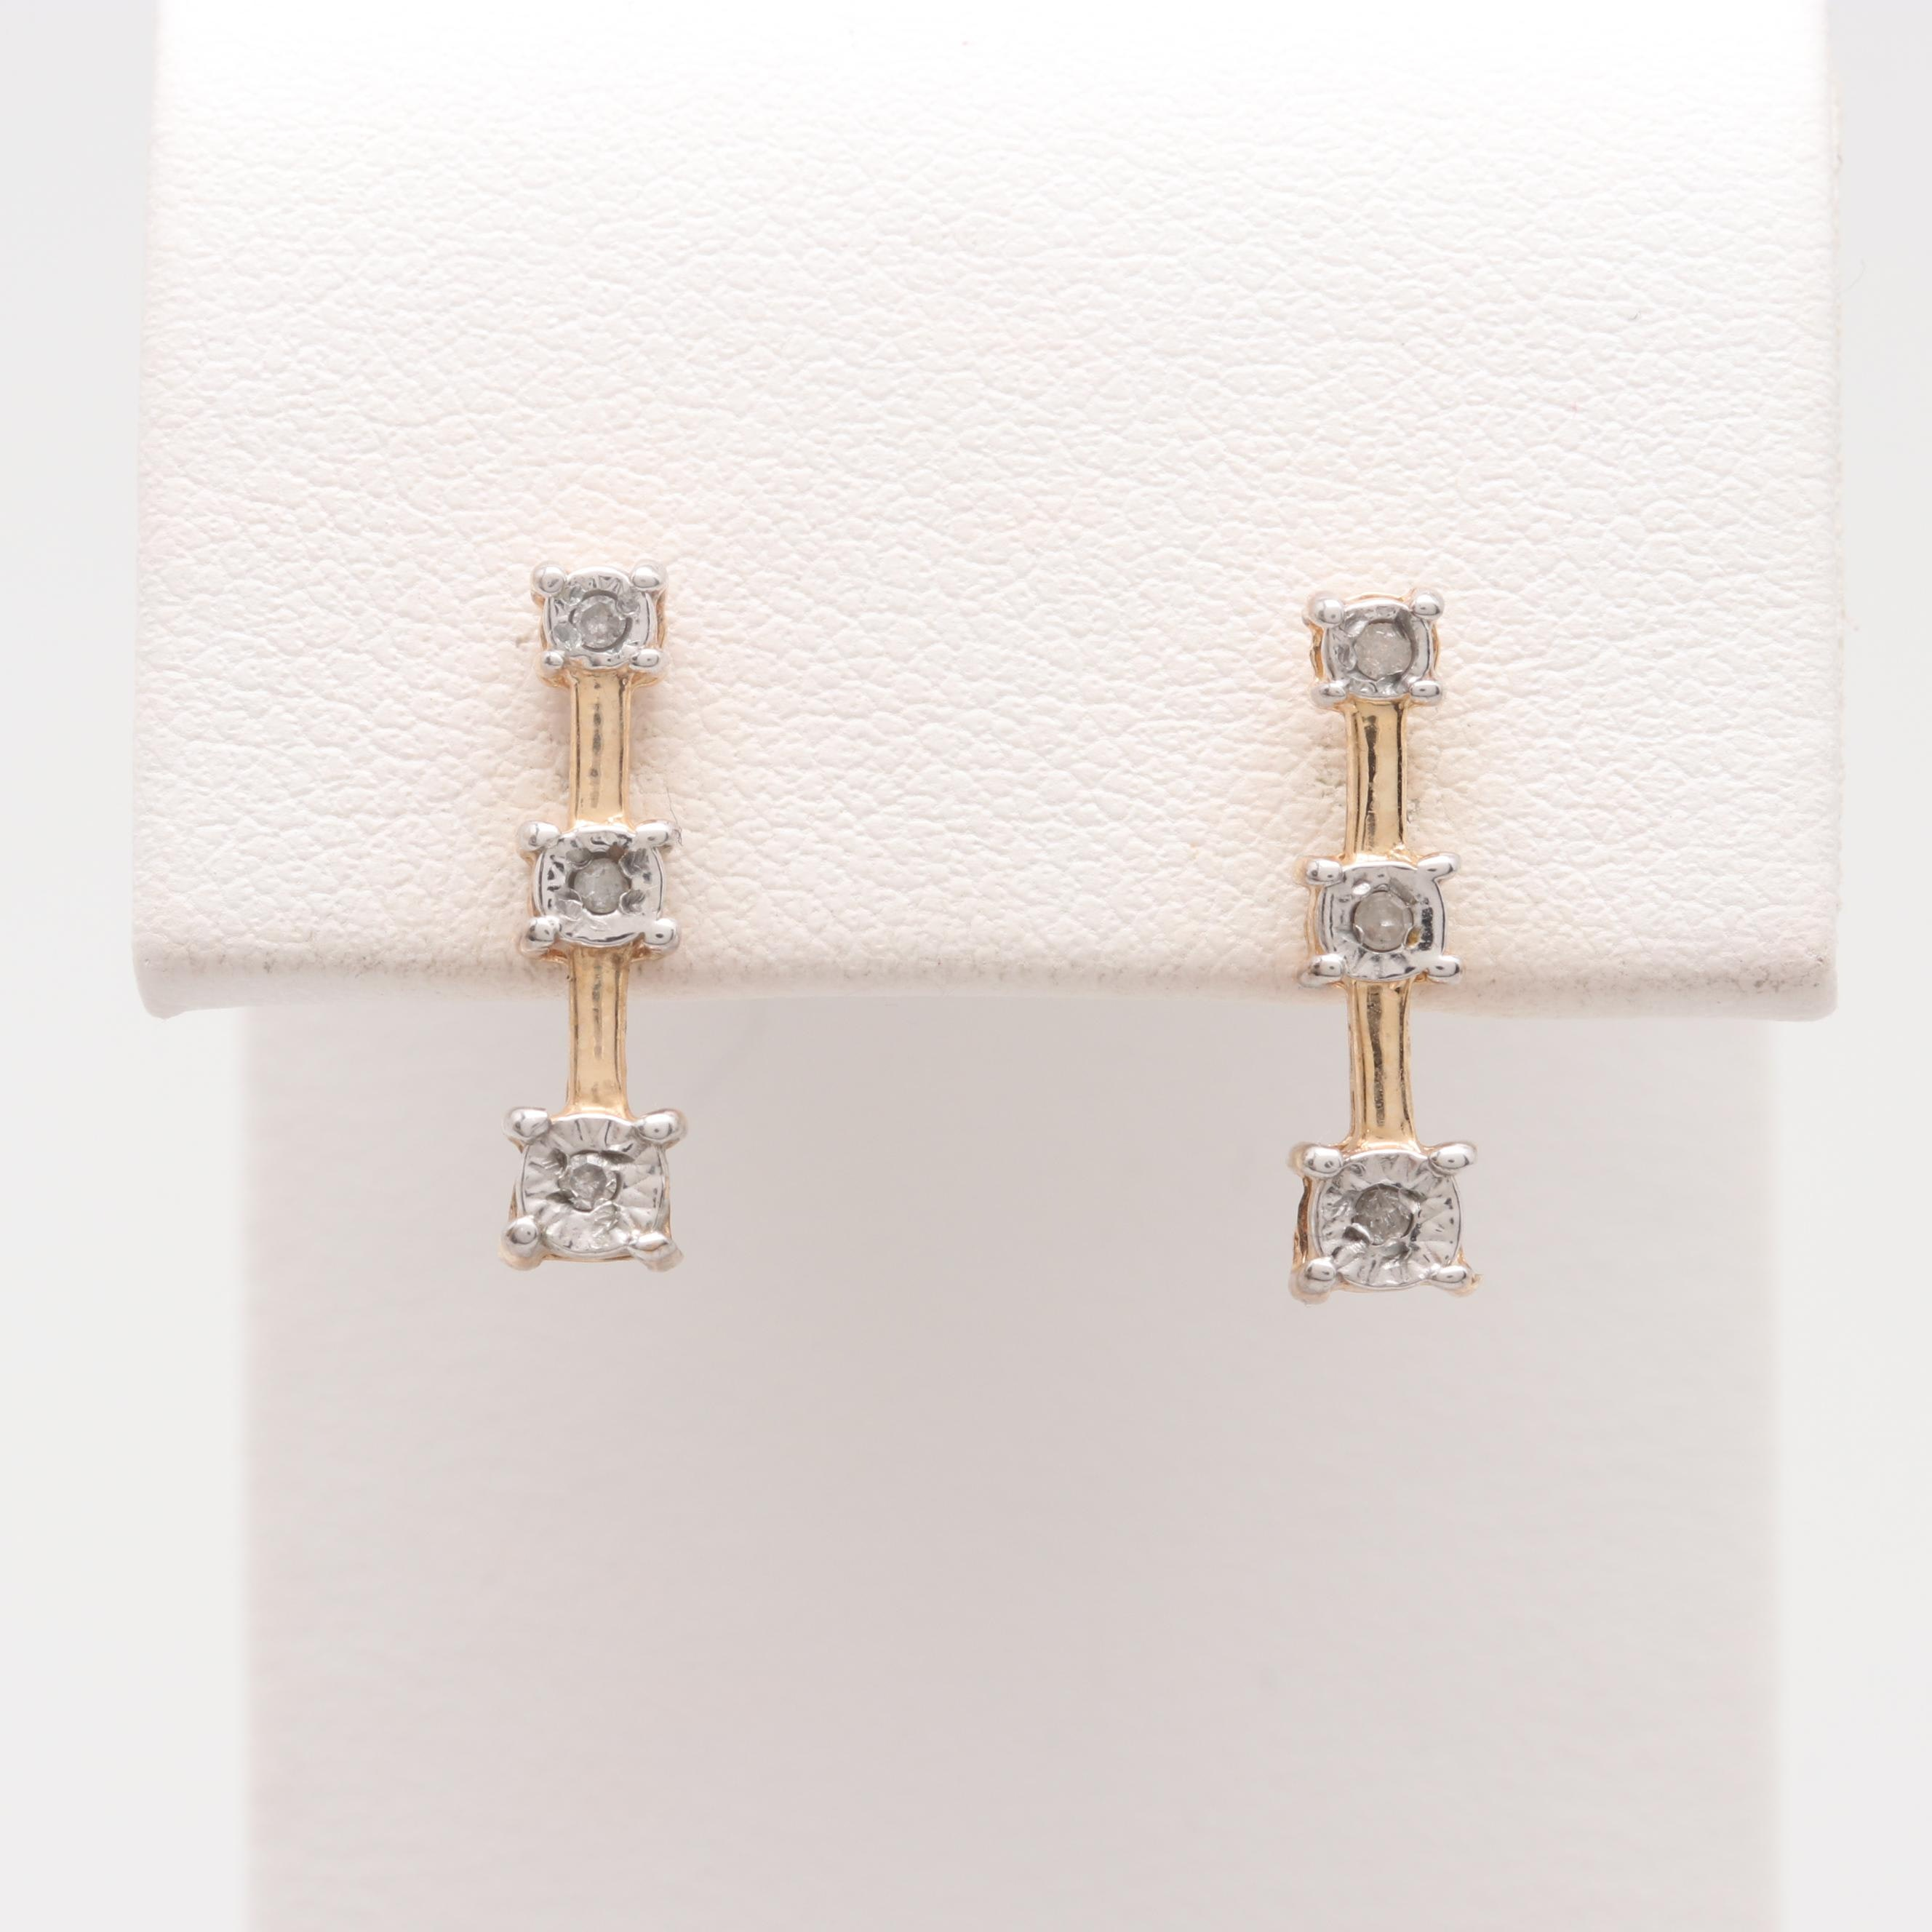 10K Yellow Gold Diamond Three-Stone Earrings